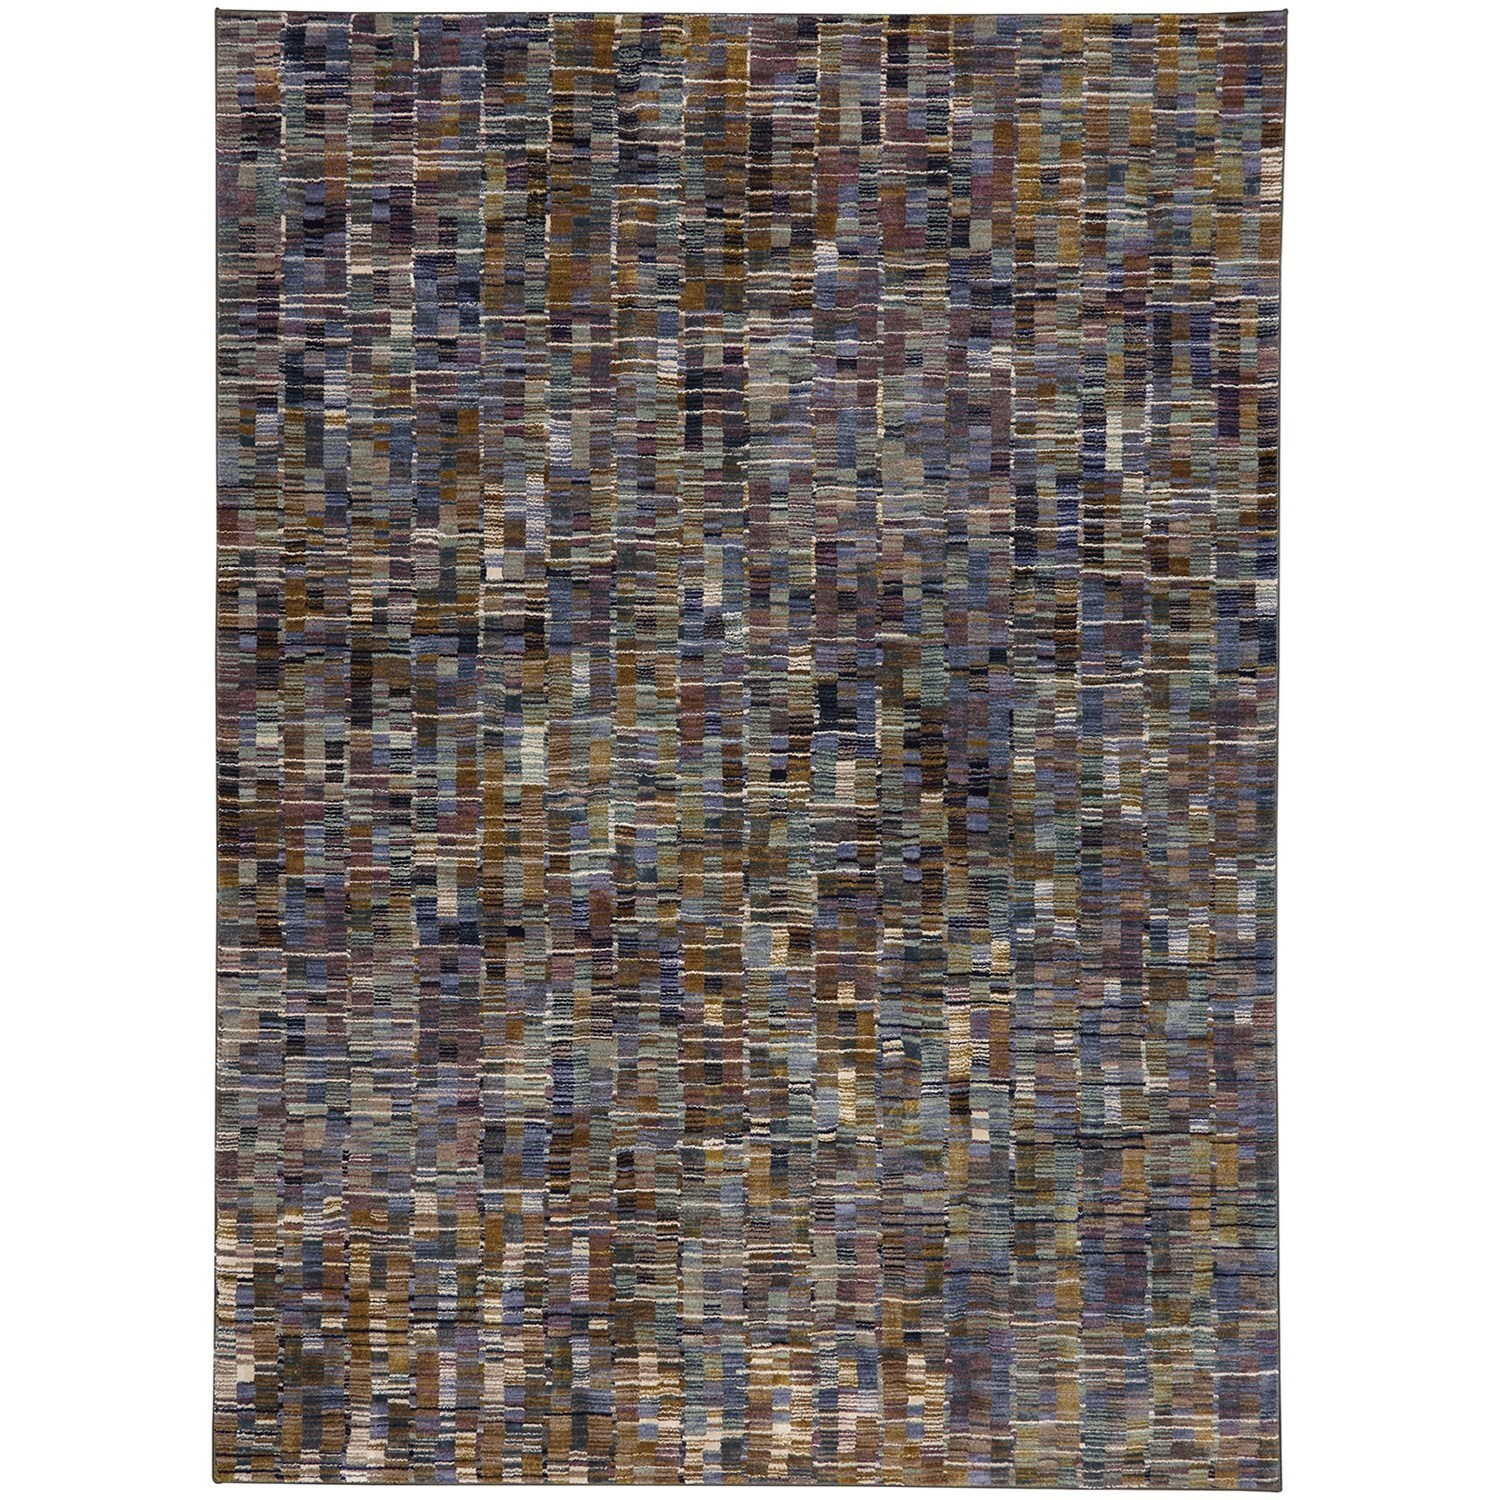 8'x11' Rectangle Geometric Area Rug